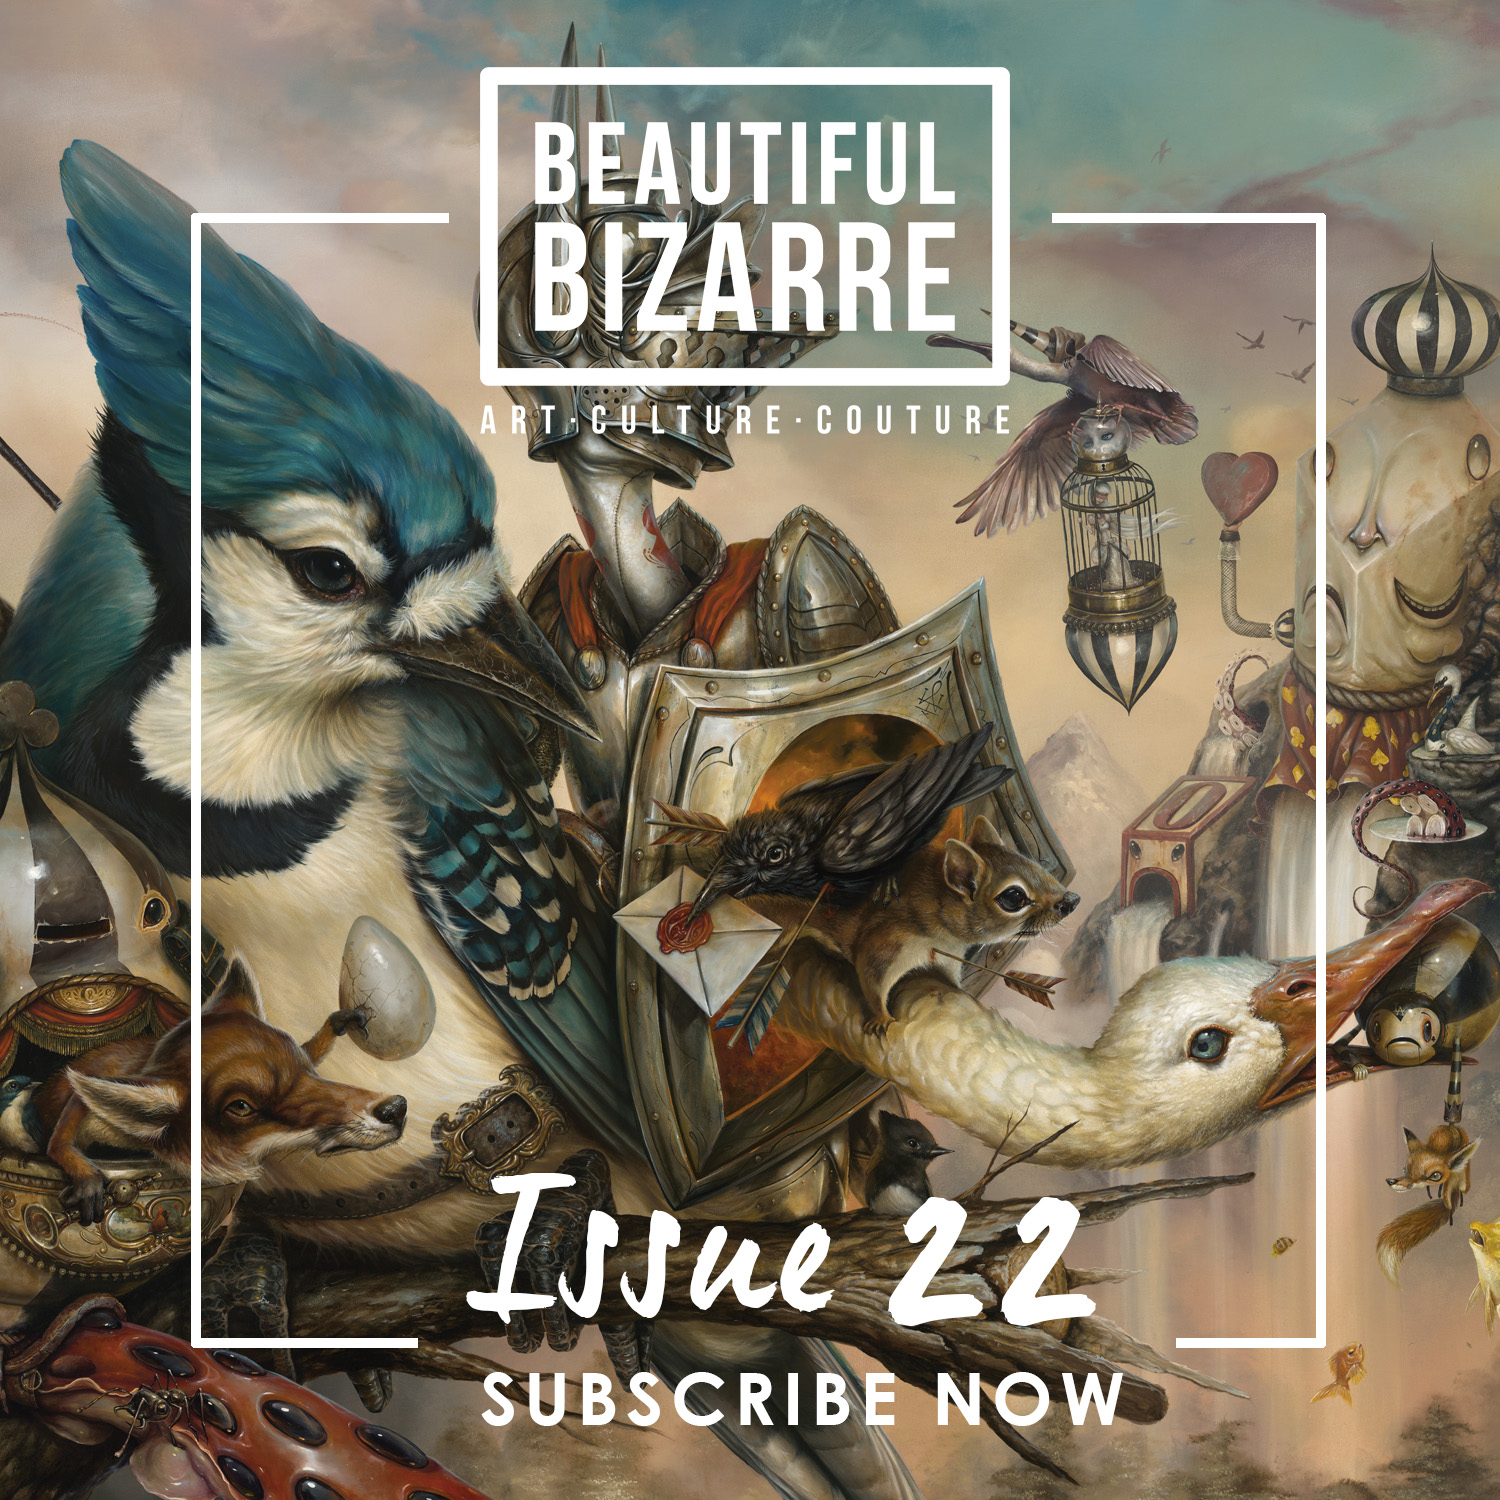 I'm honored be featured in the September issue of Beautiful Bizarre Magazine! Available for pre-order NOW! Over 40 artists, 140 pages for just $13.49 for a limited time!